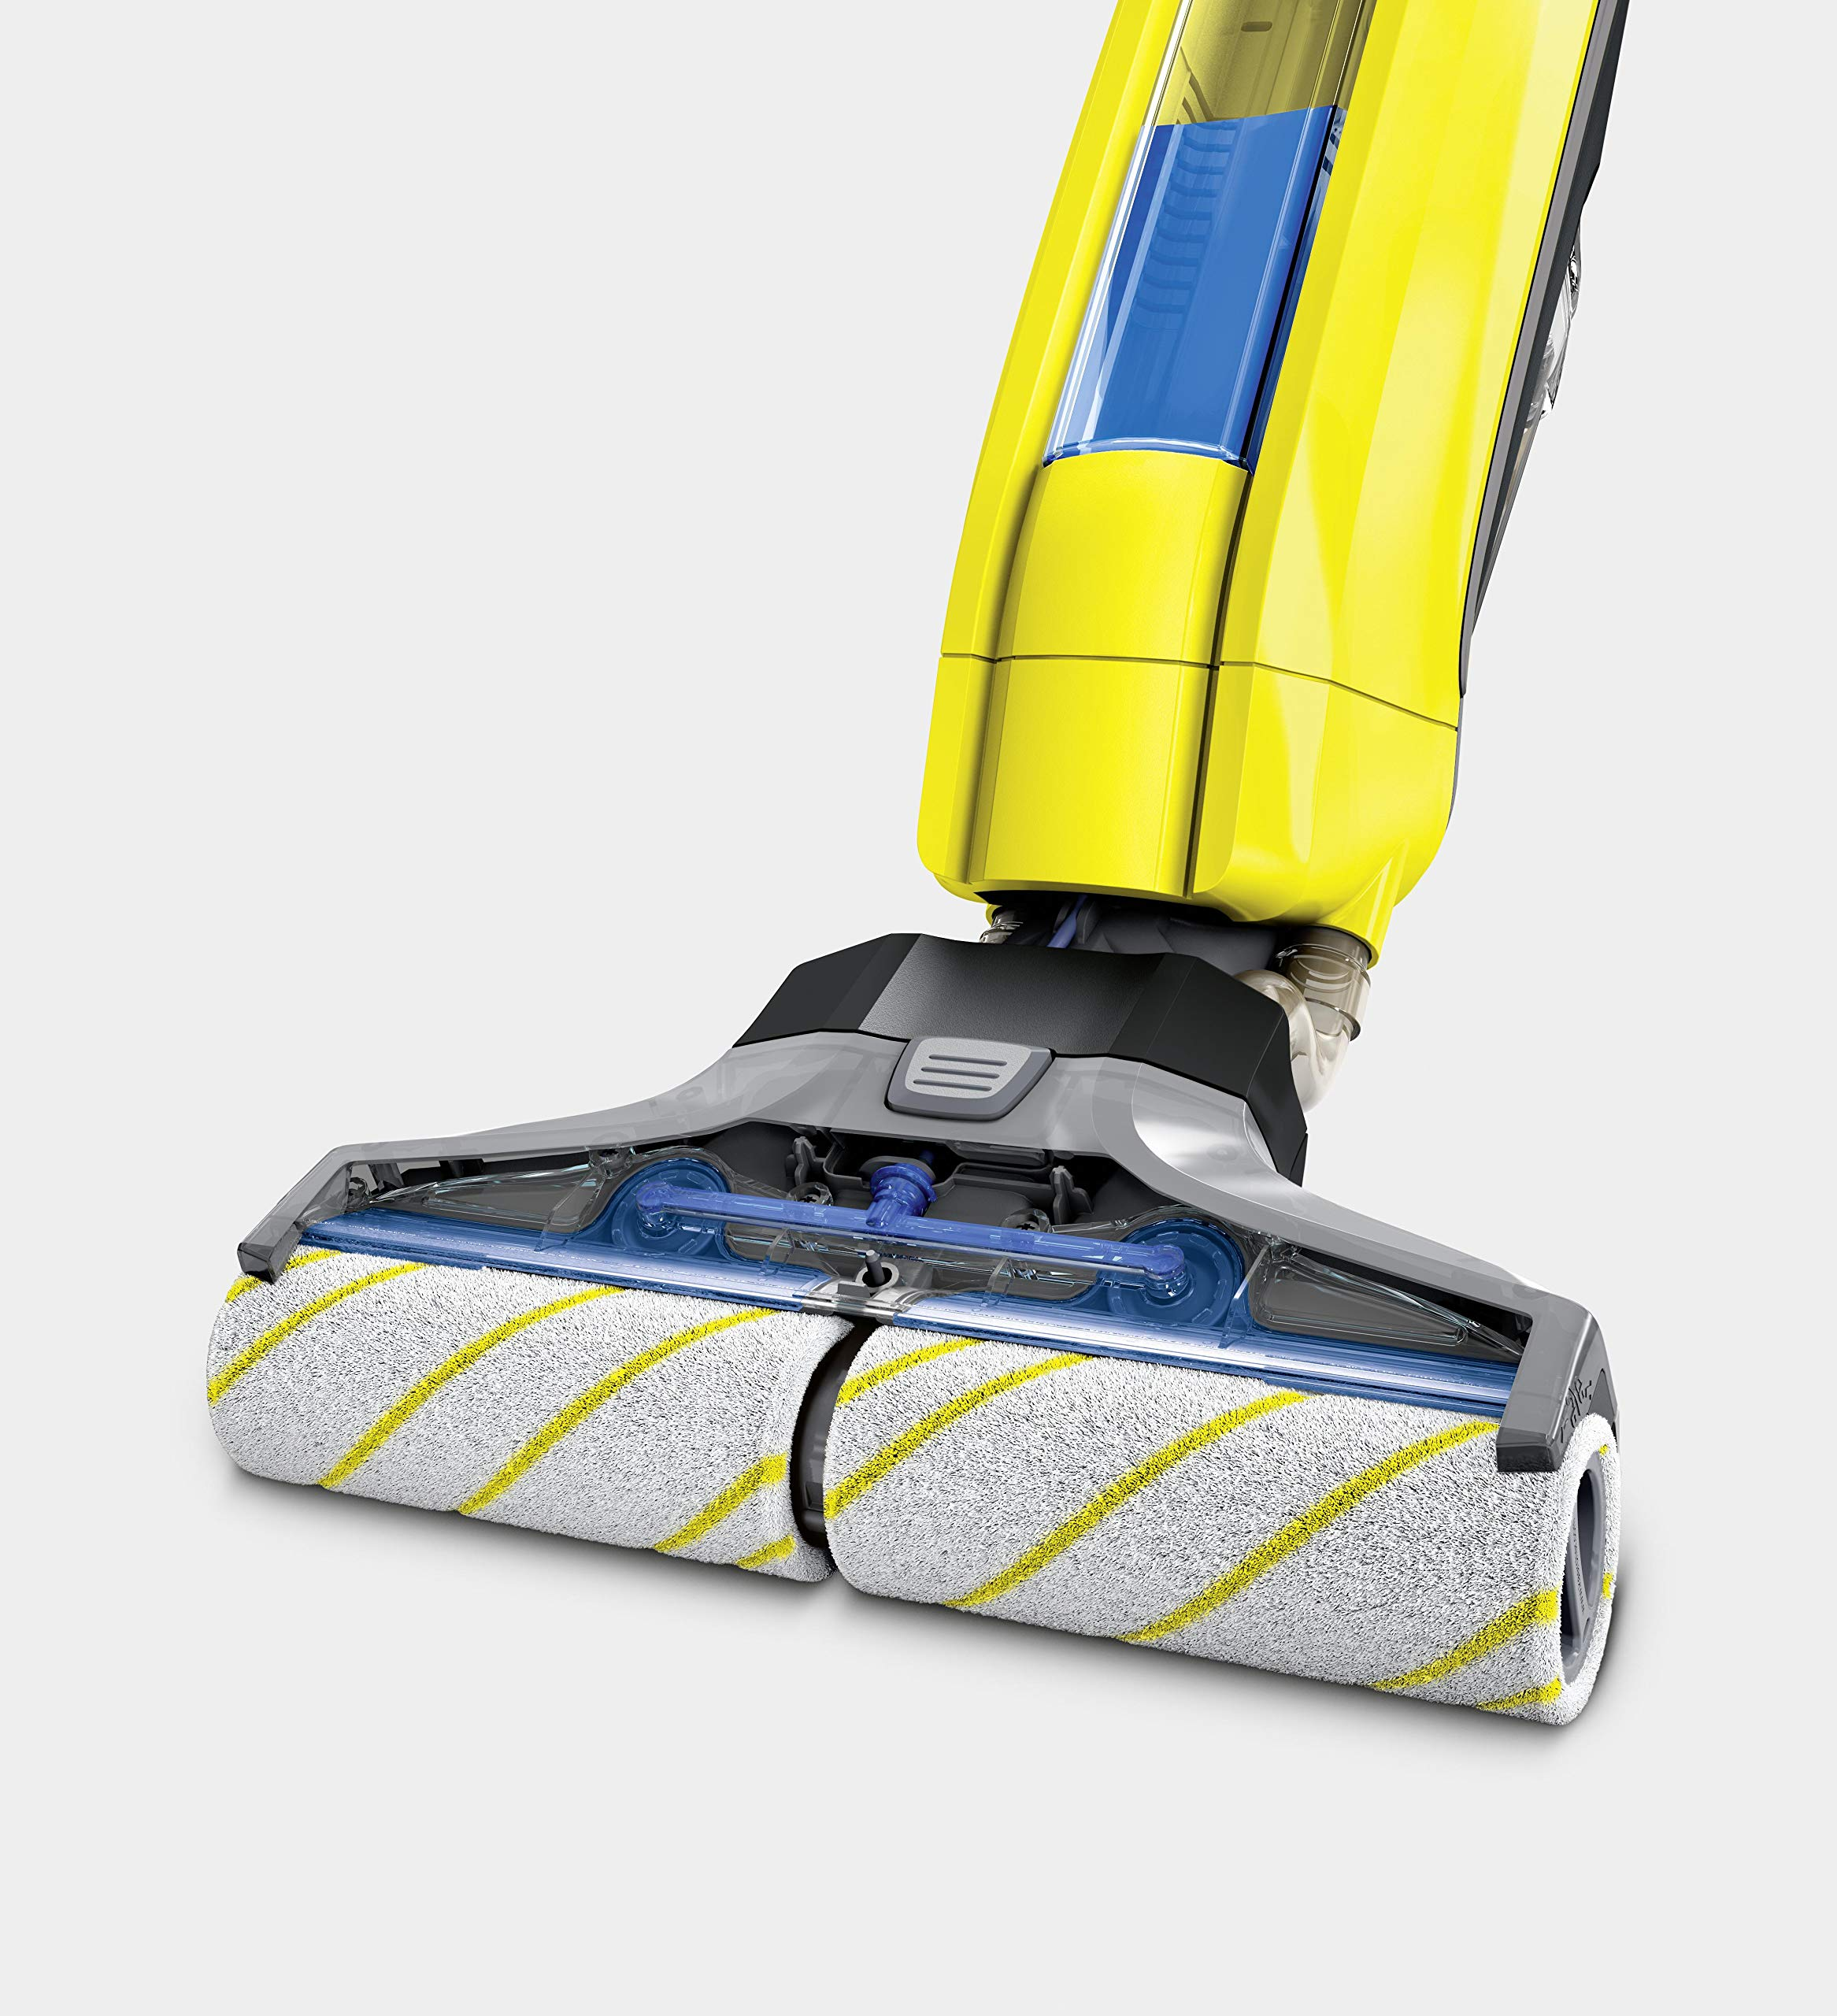 KARCHER FC5 Hard Floor Cleaner - Yellow by Karcher (Image #7)